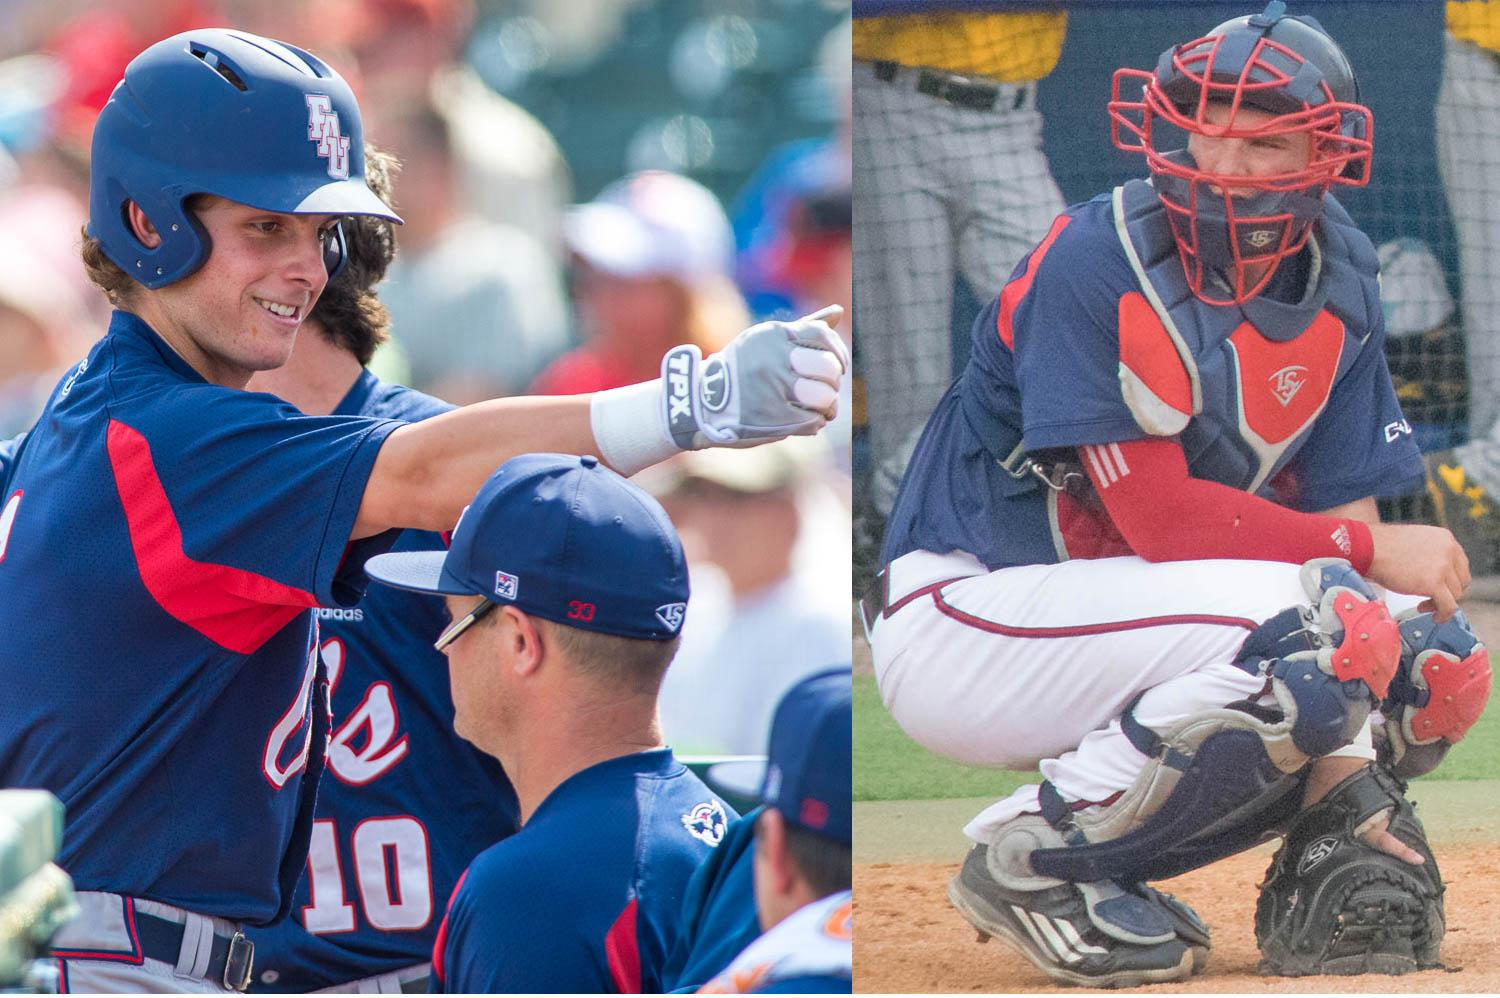 Tyler Frank versus Gunnar Lambert: comparing the numbers behind FAU baseball's catching platoon